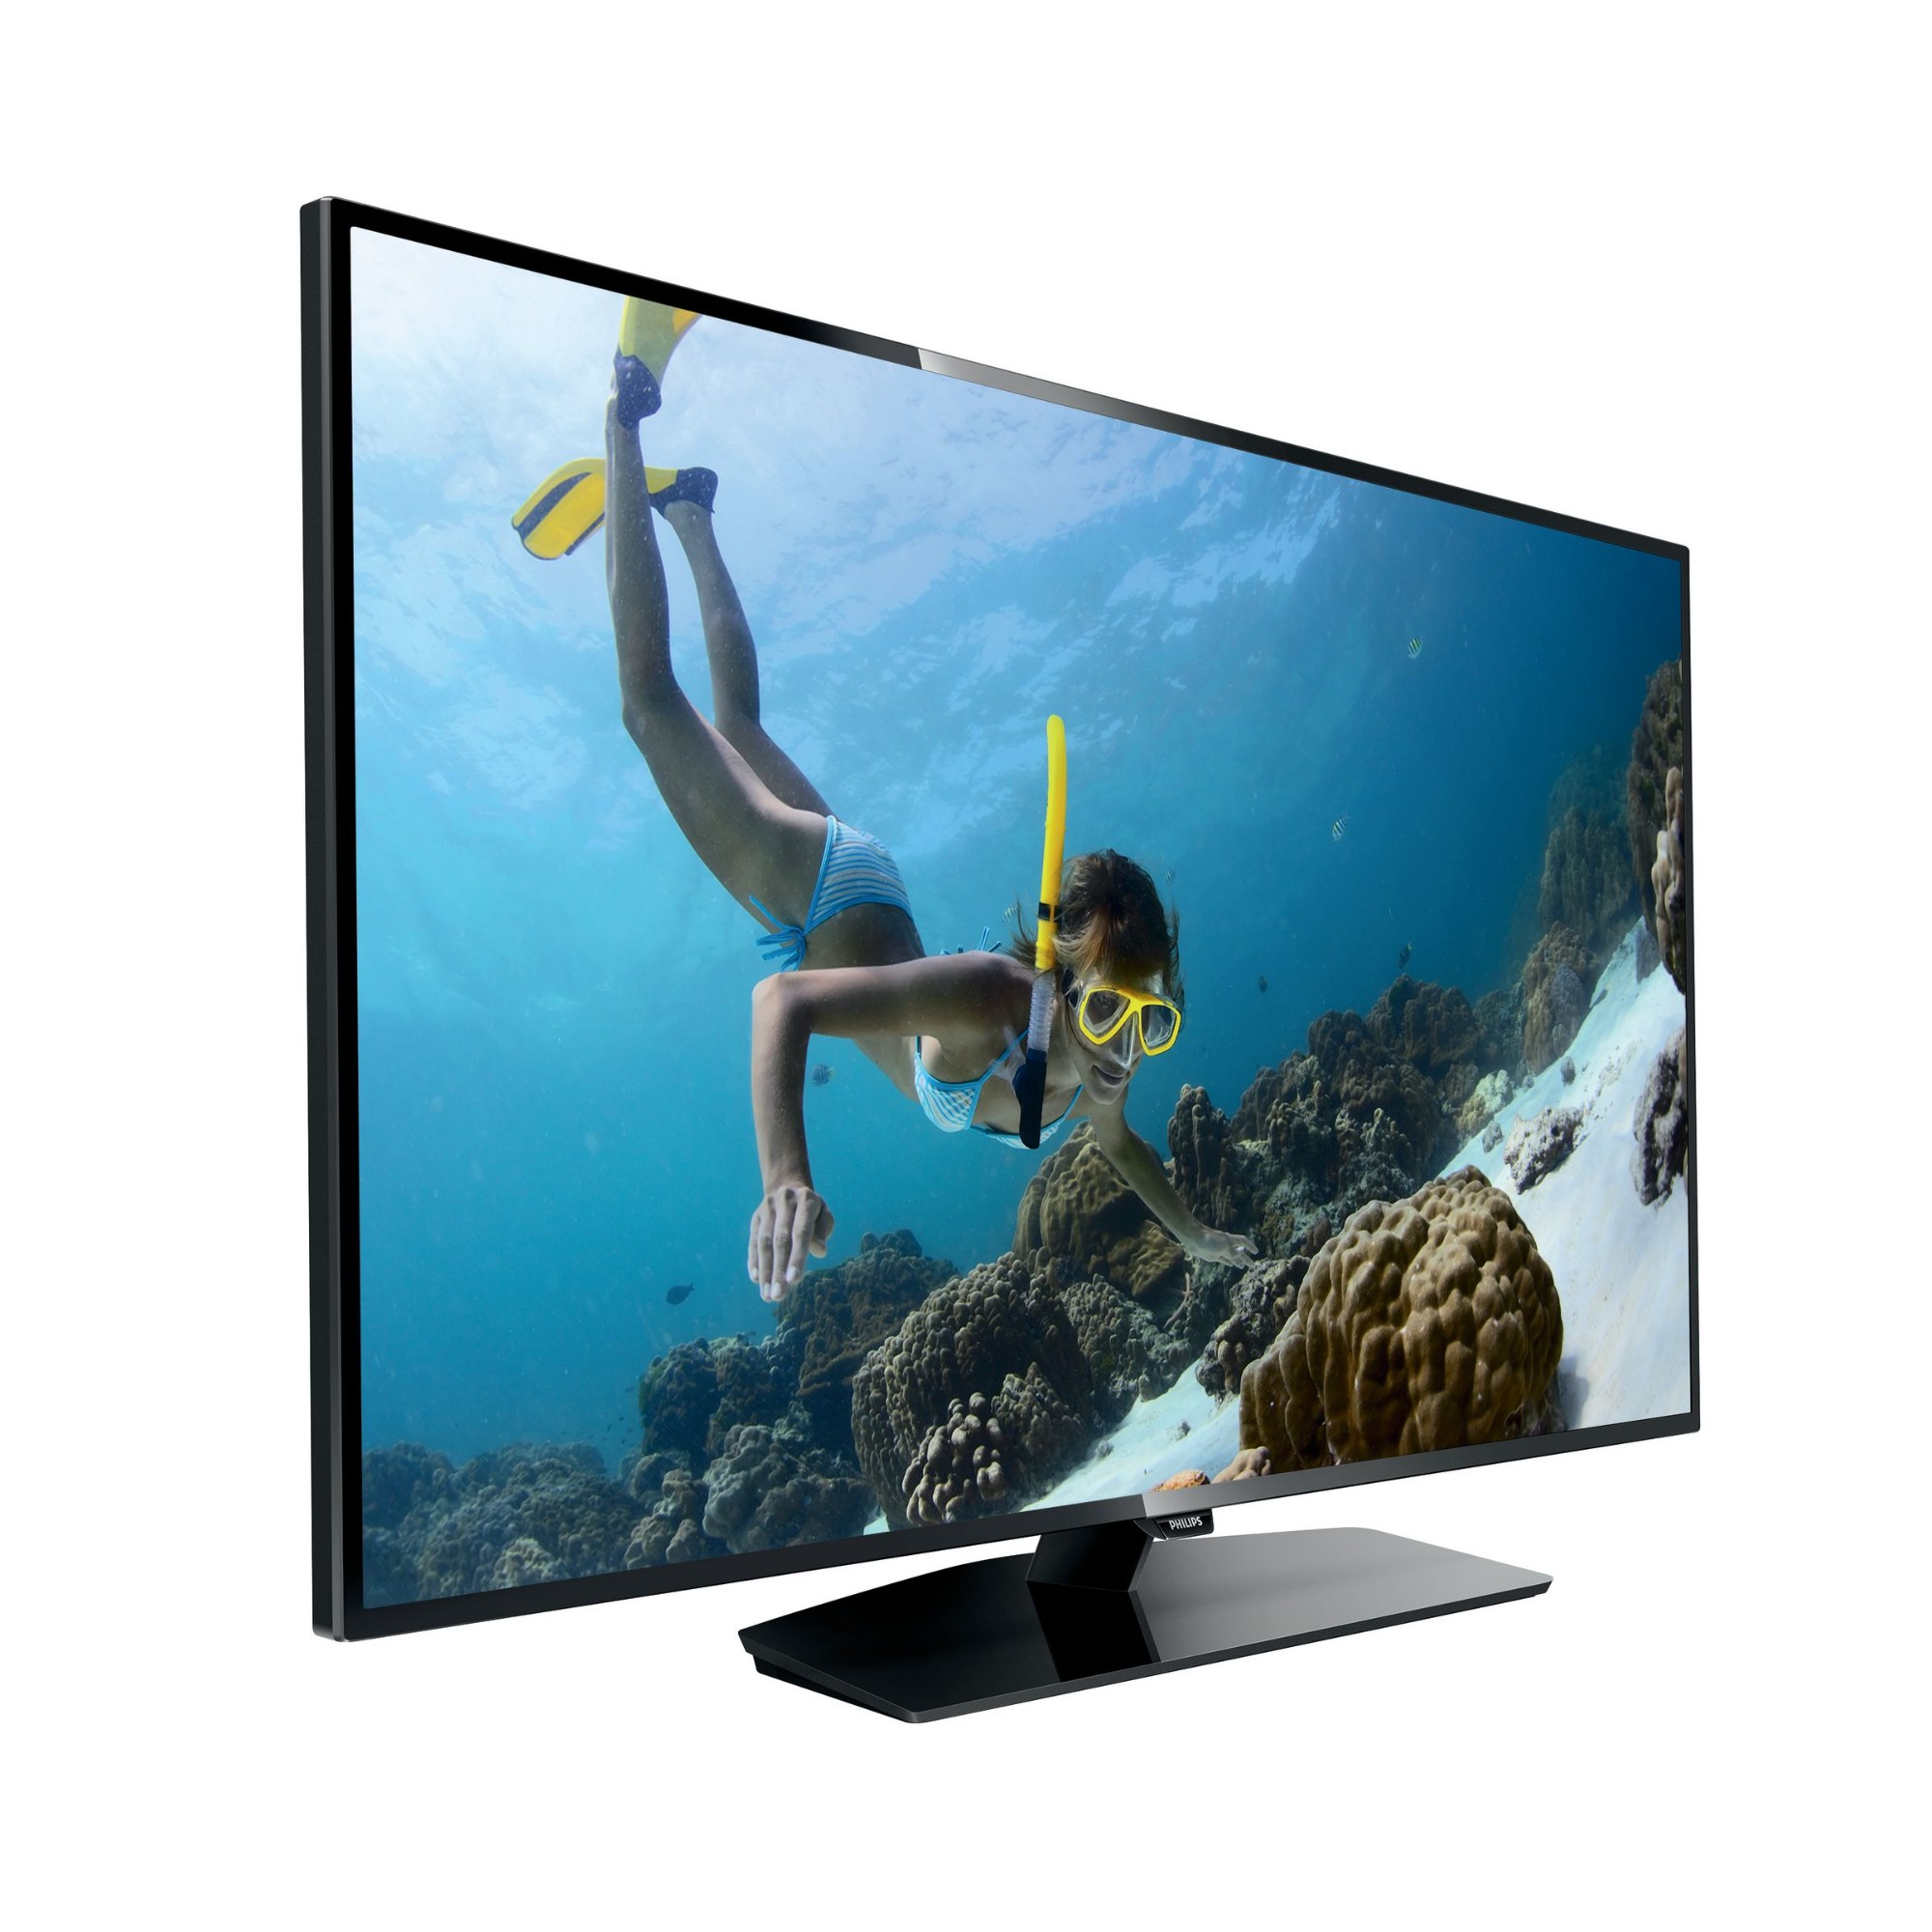 Philips EasySuite Hospitality TV 32HFL3011T/12 LED TV